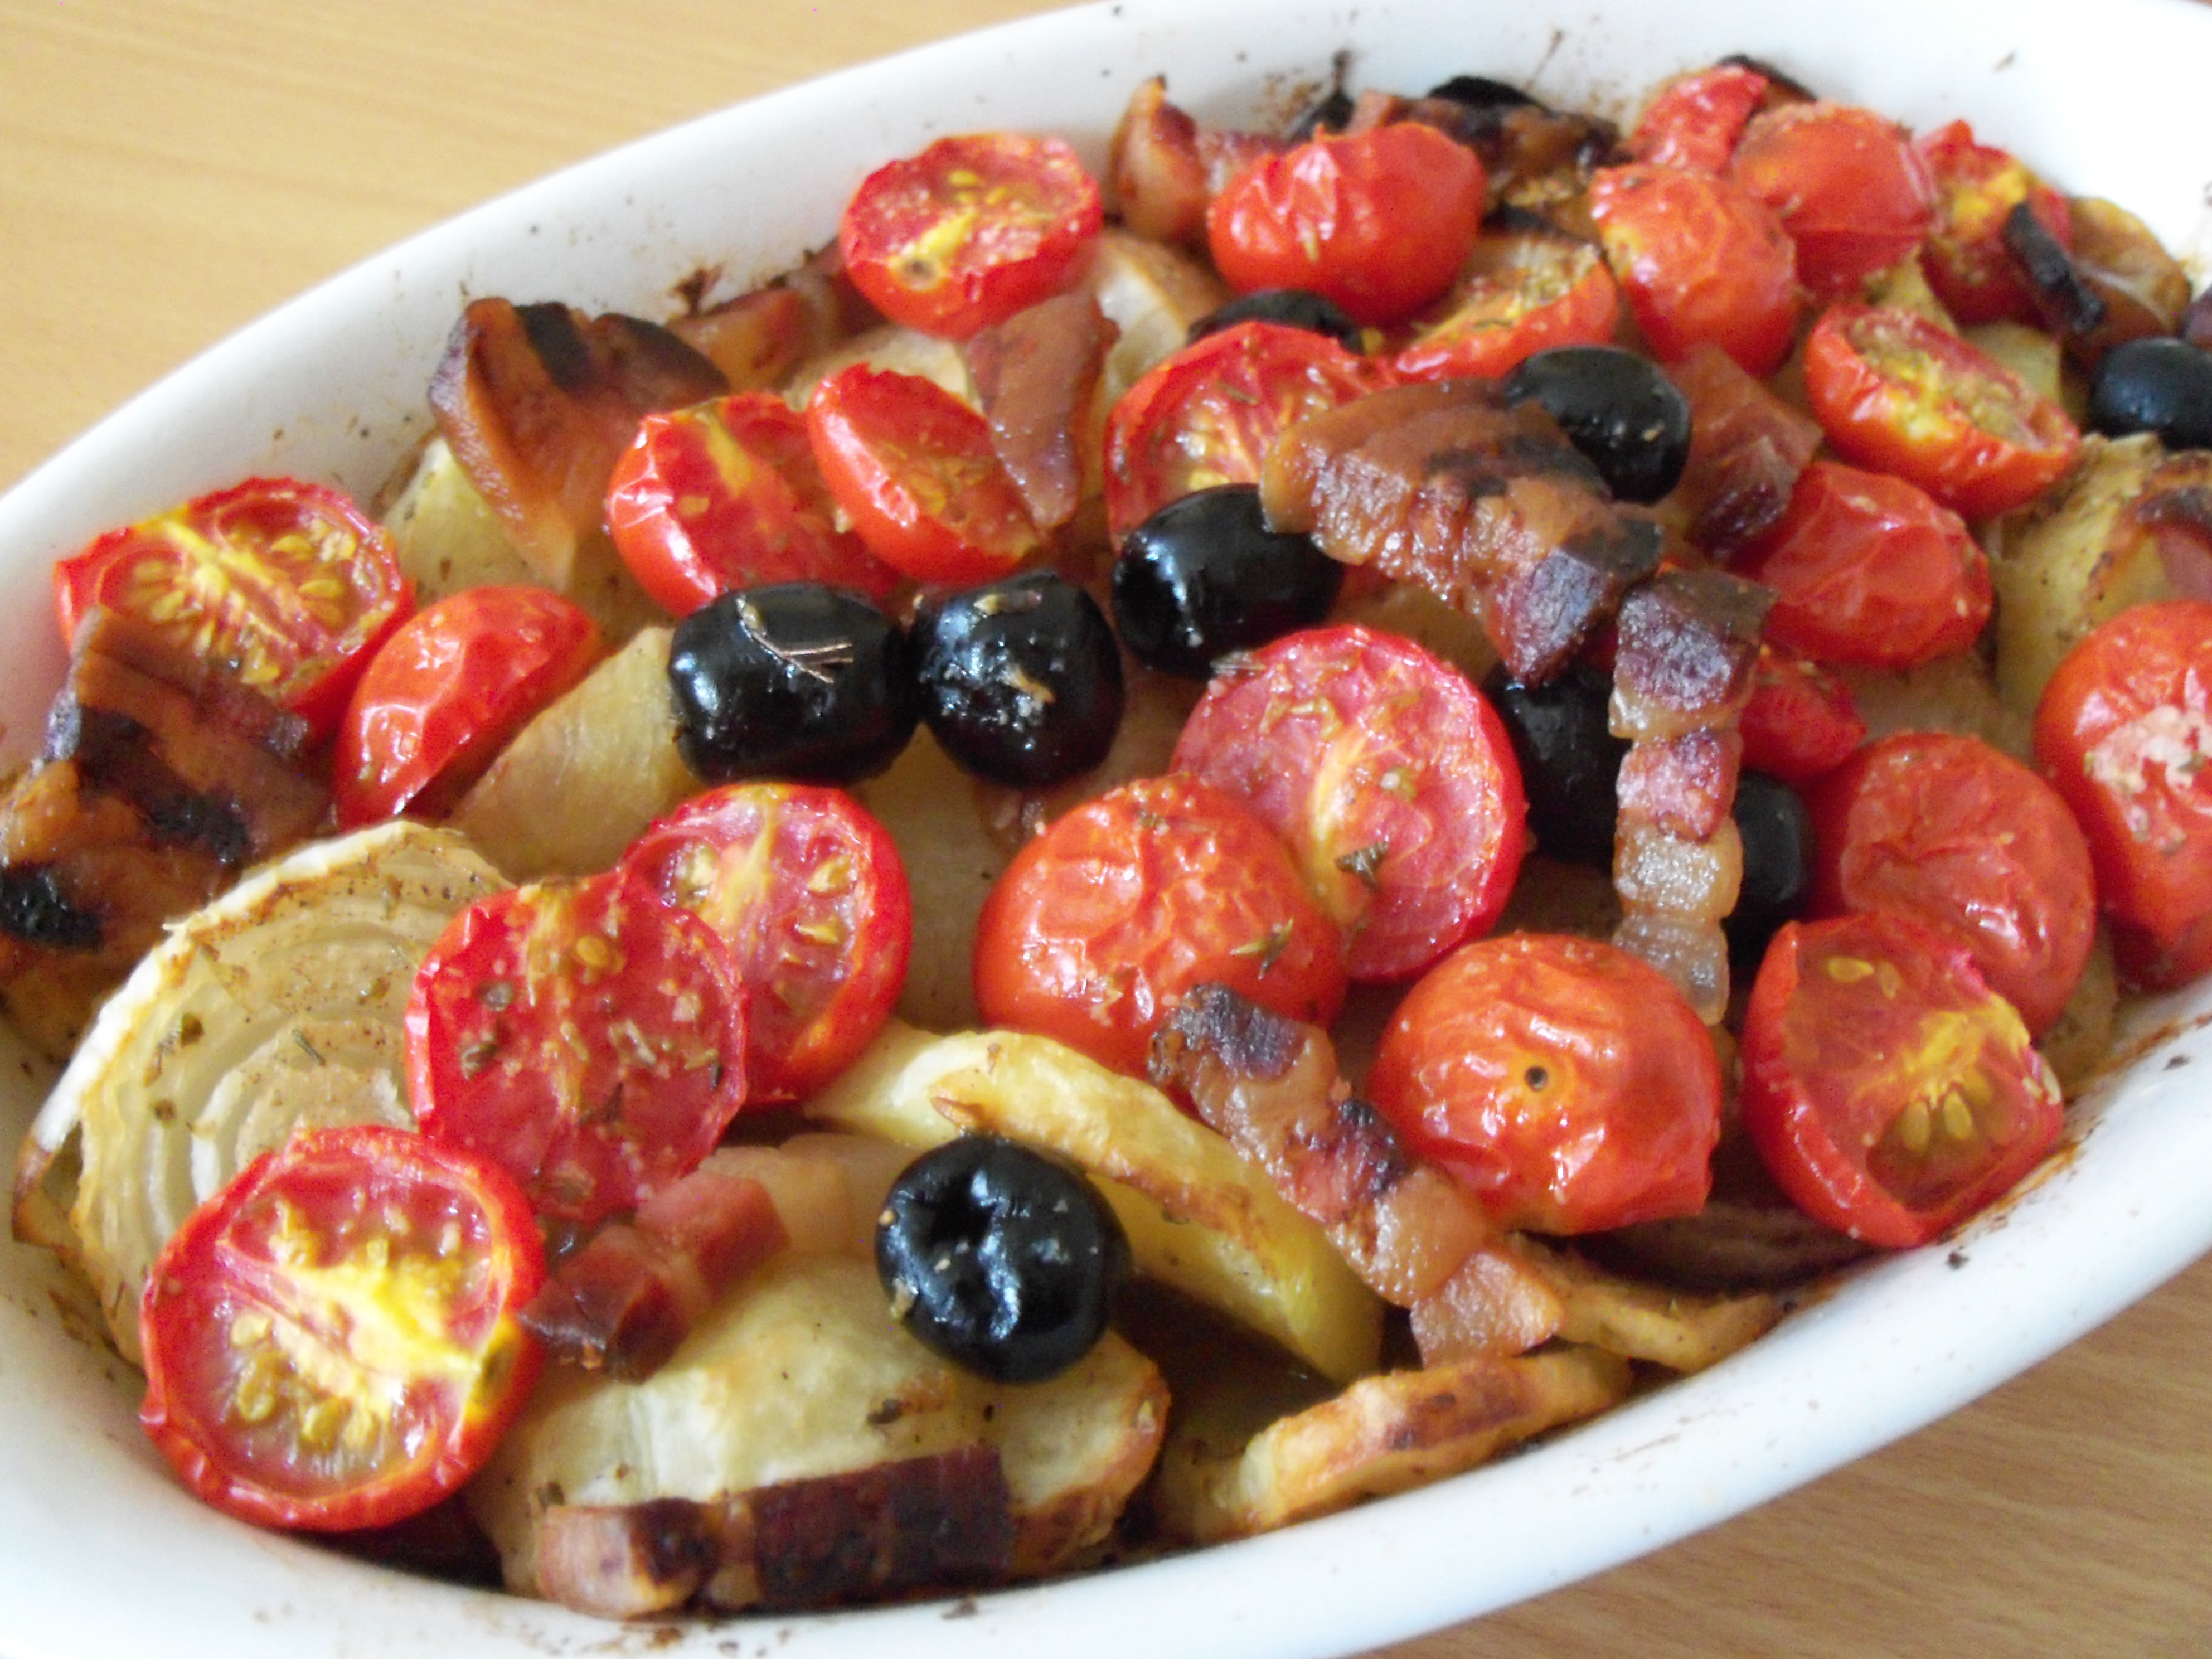 PATATE ARRAGANATE AL FORNO